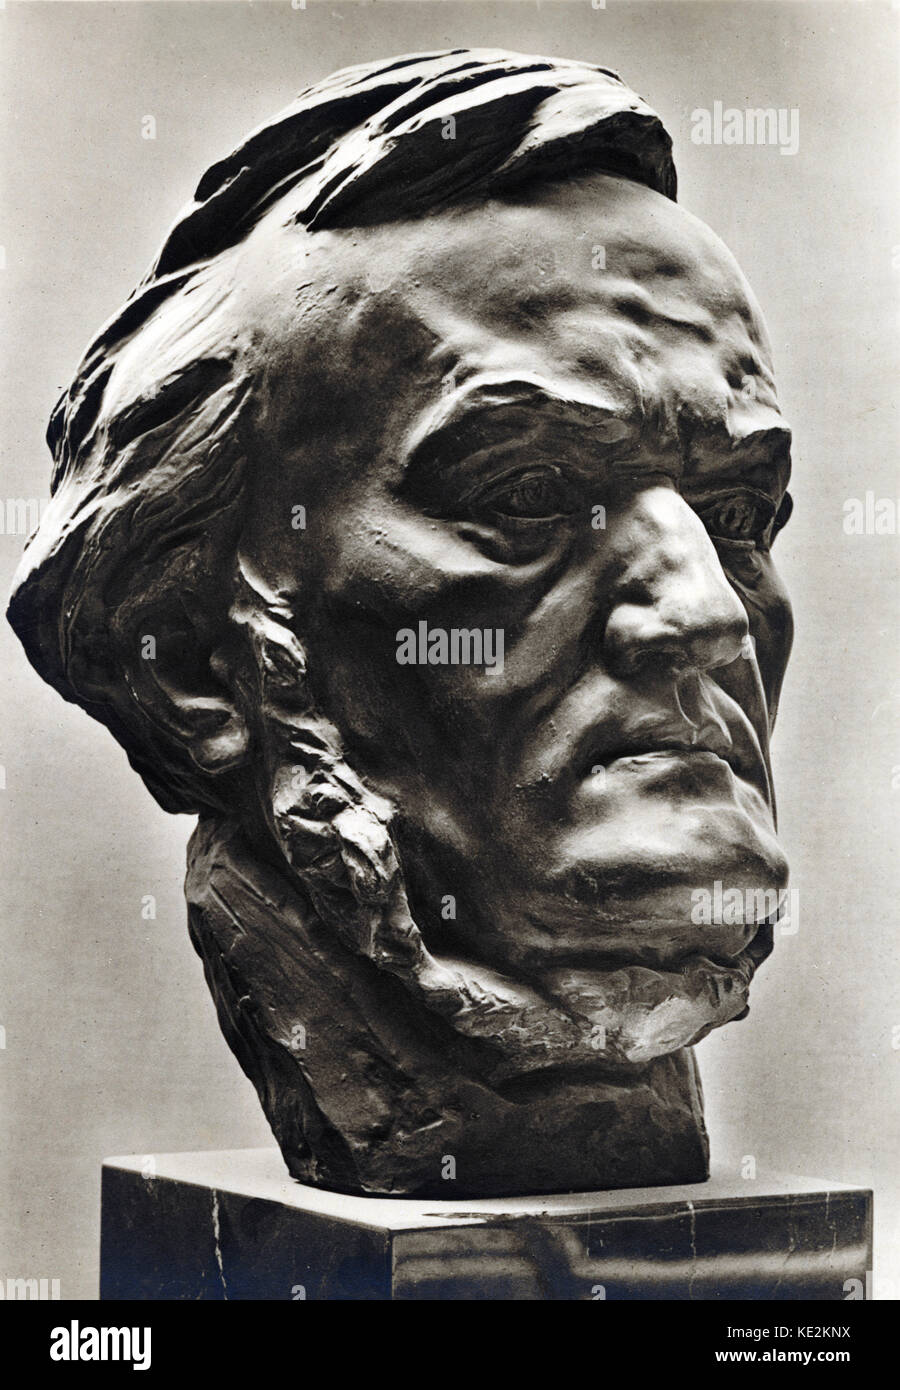 Richard Wagner sculpture. RW, German composer & author: 22 May 1813 - 13 February 1883. - Stock Image